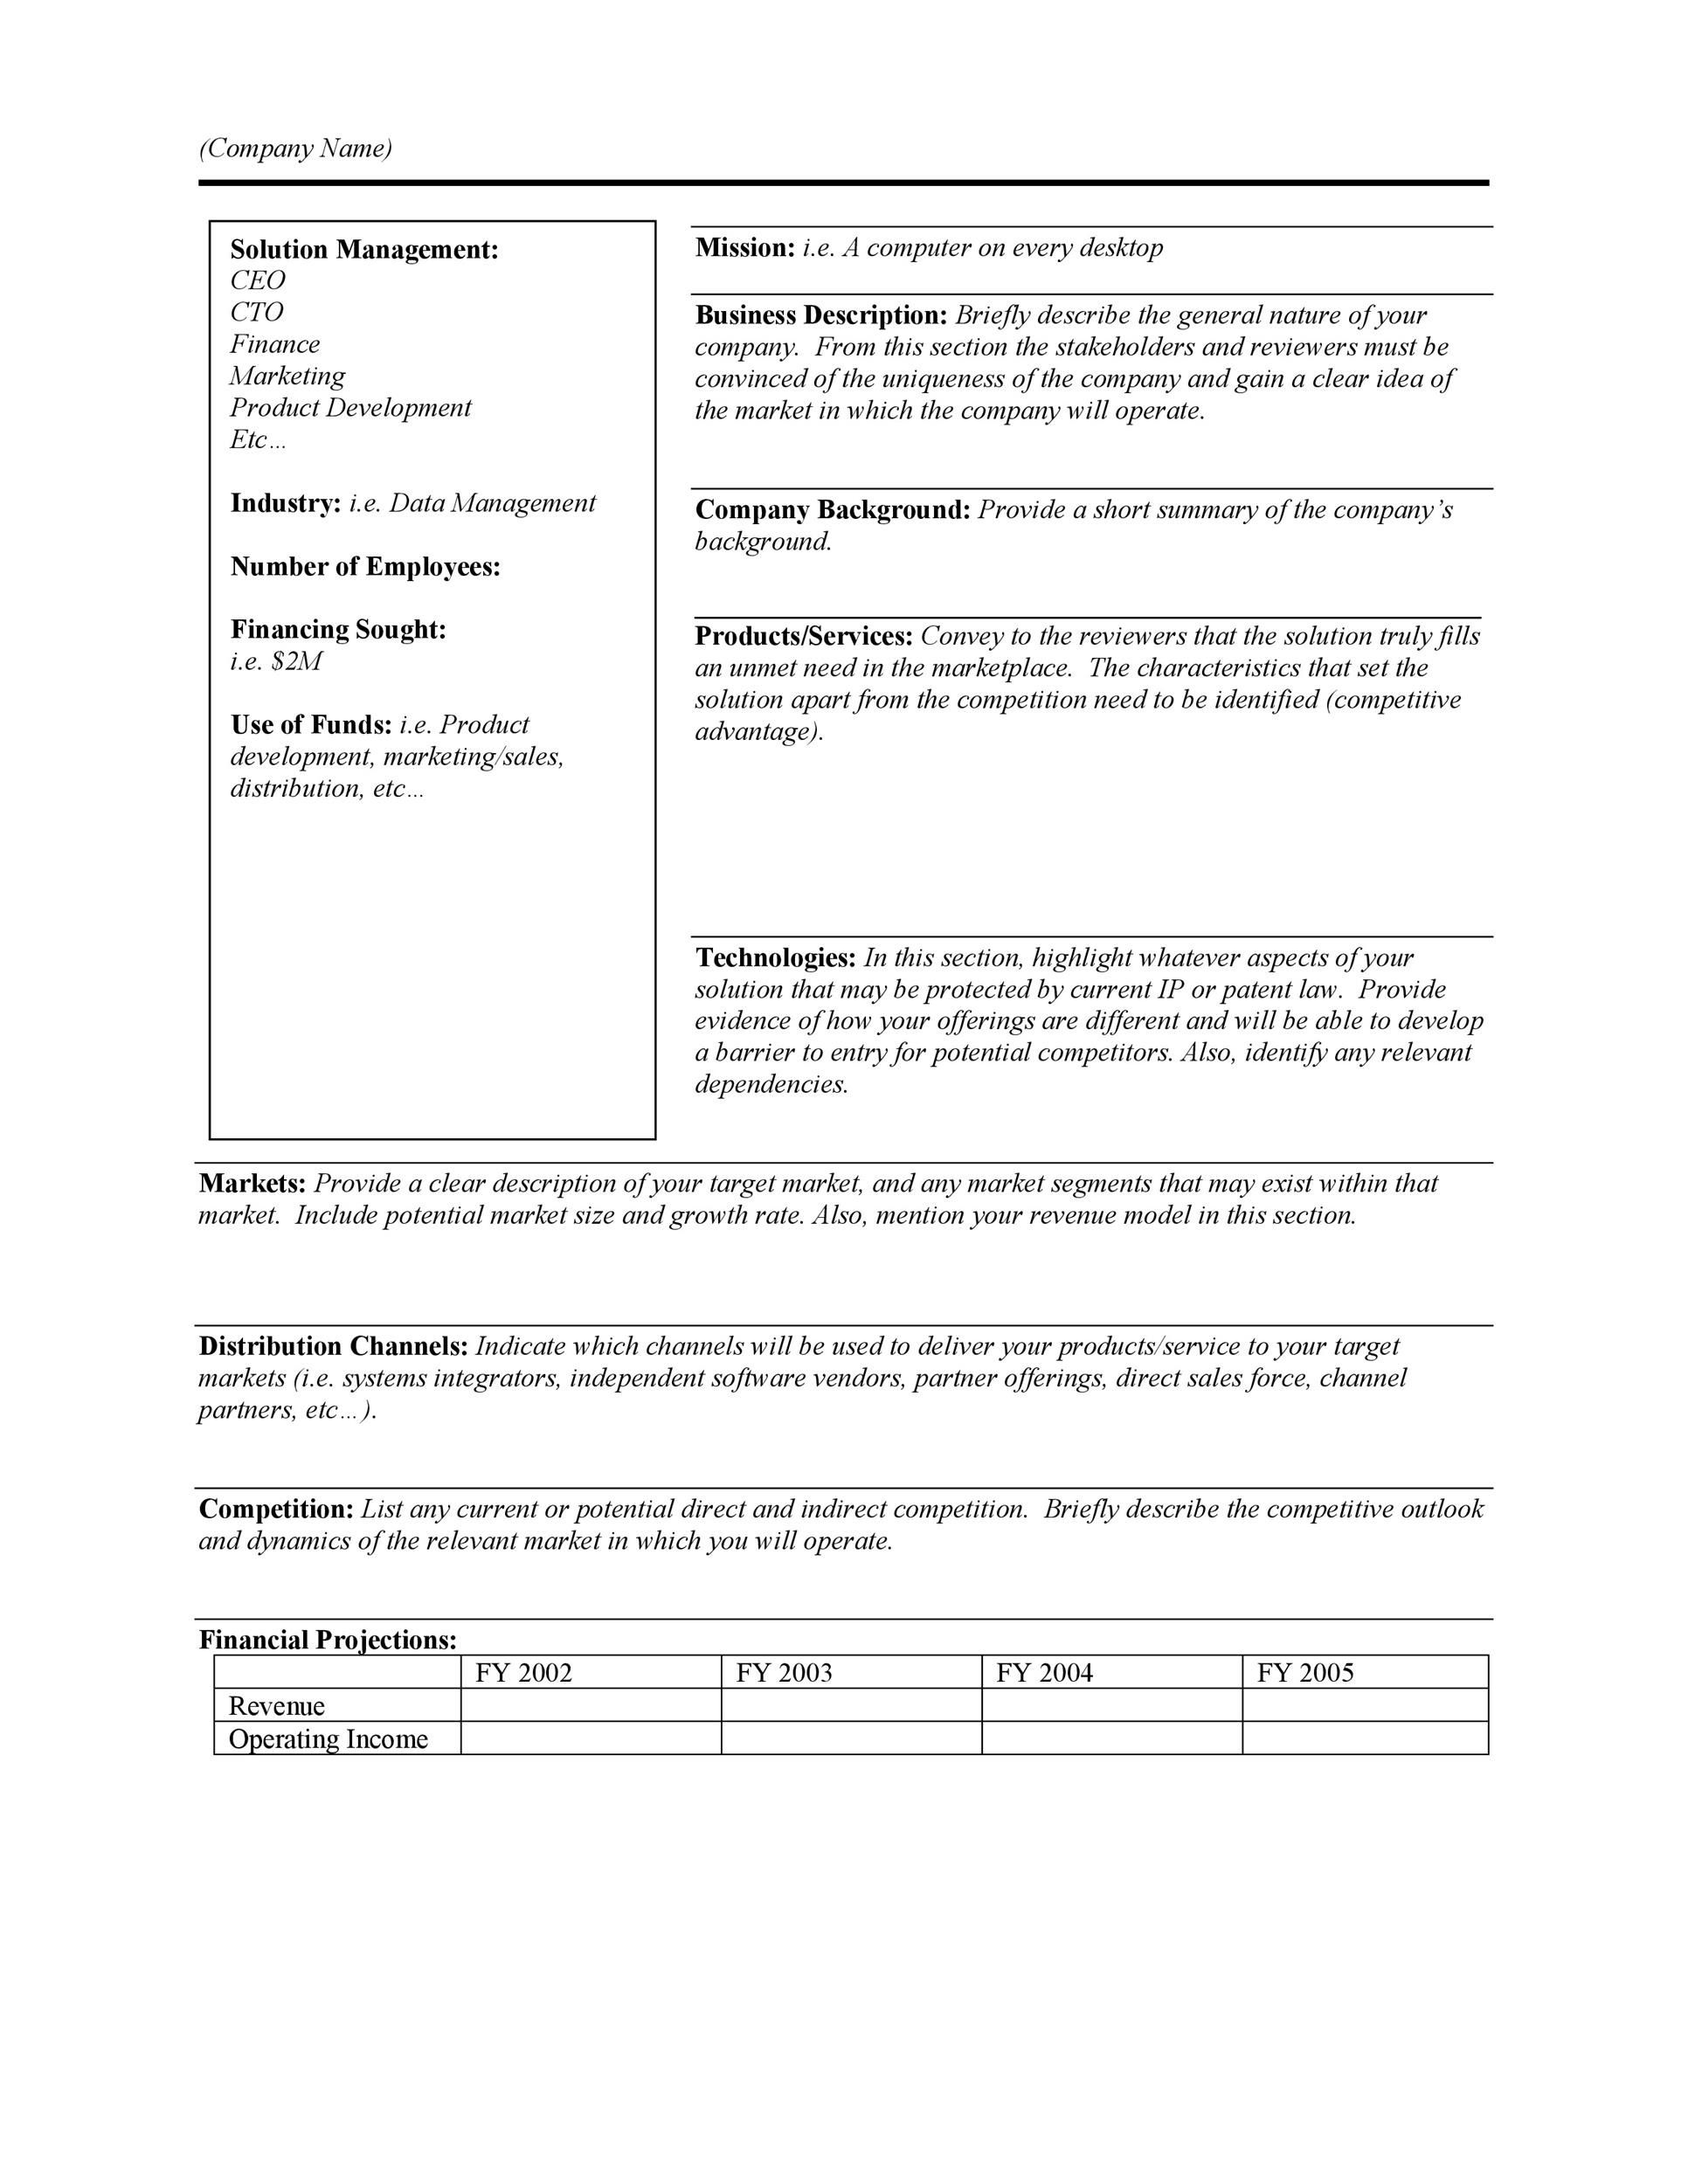 008 Shocking Executive Summary Word Template Free Download High Definition Full